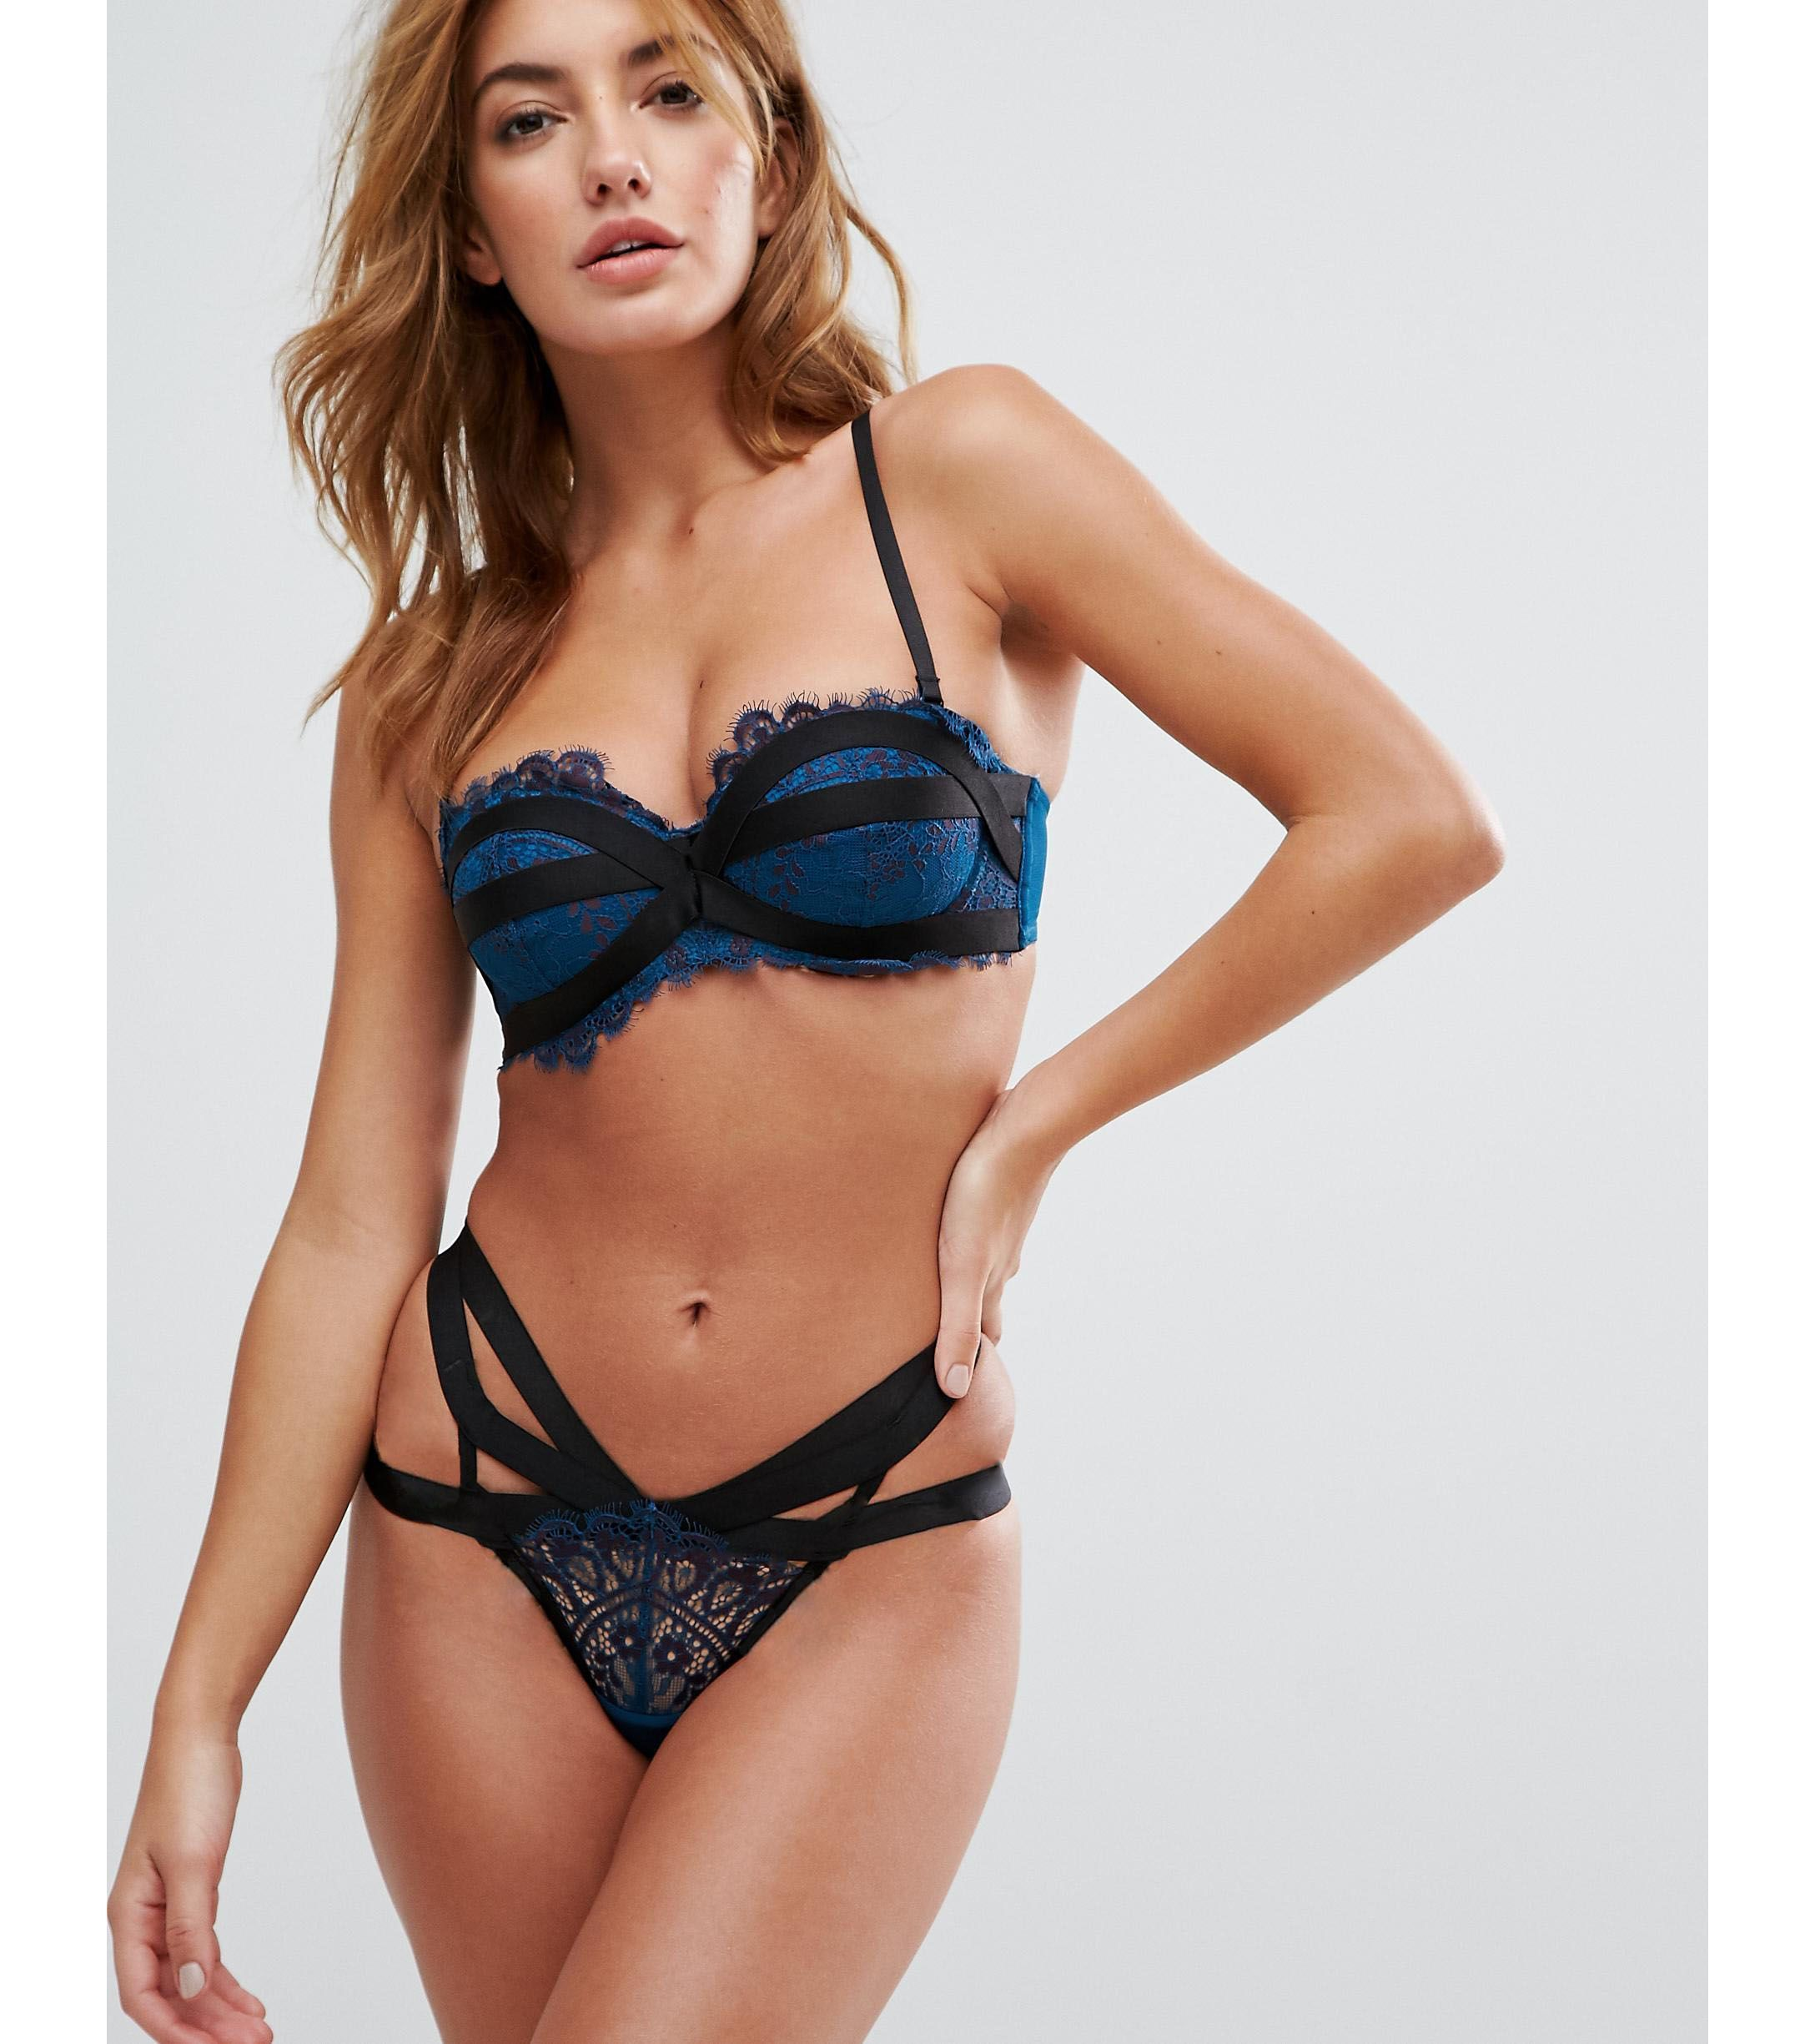 ★ASOSセレクト★Hunkemoller Psychotropical Laurel Bra